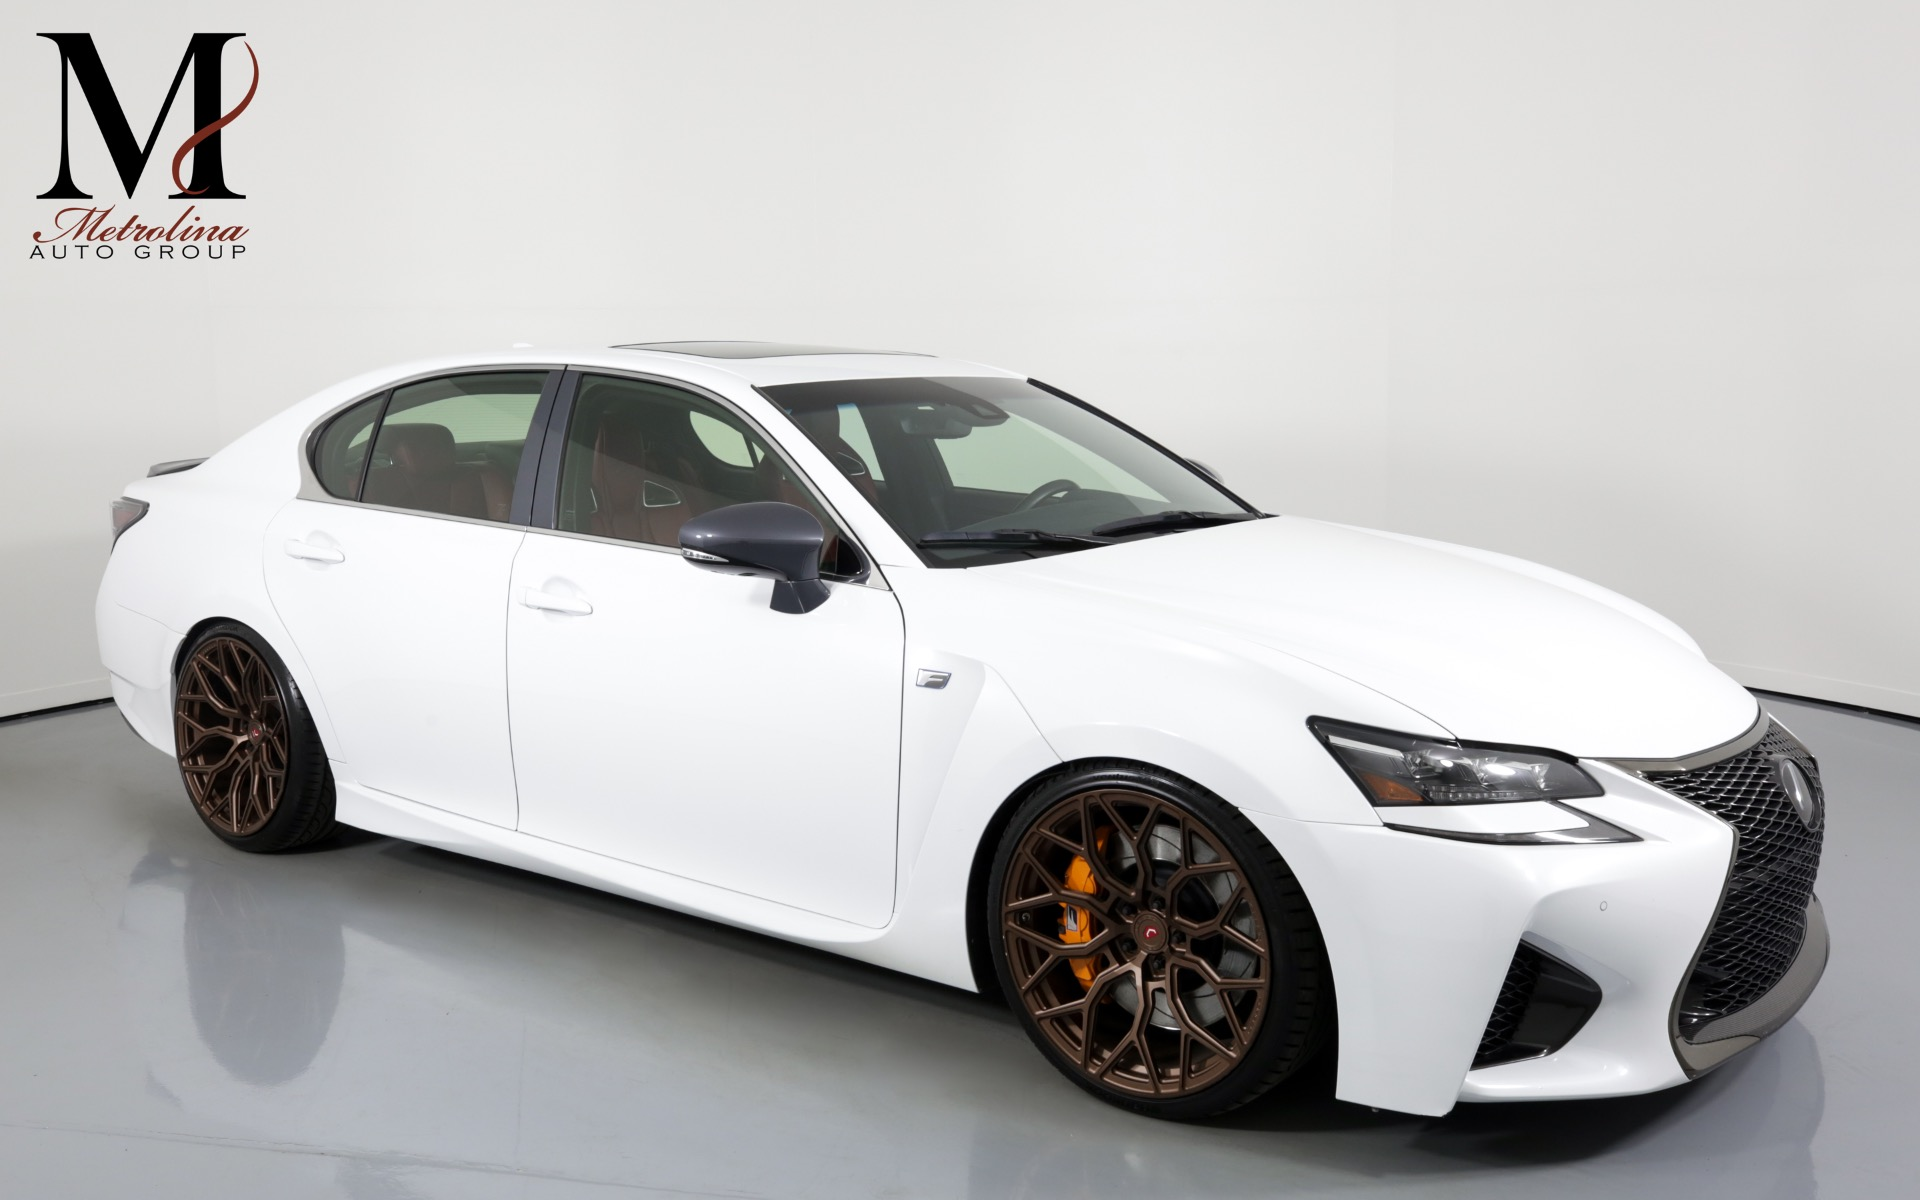 Used 2018 Lexus GS F for sale $61,996 at Metrolina Auto Group in Charlotte NC 28217 - 1